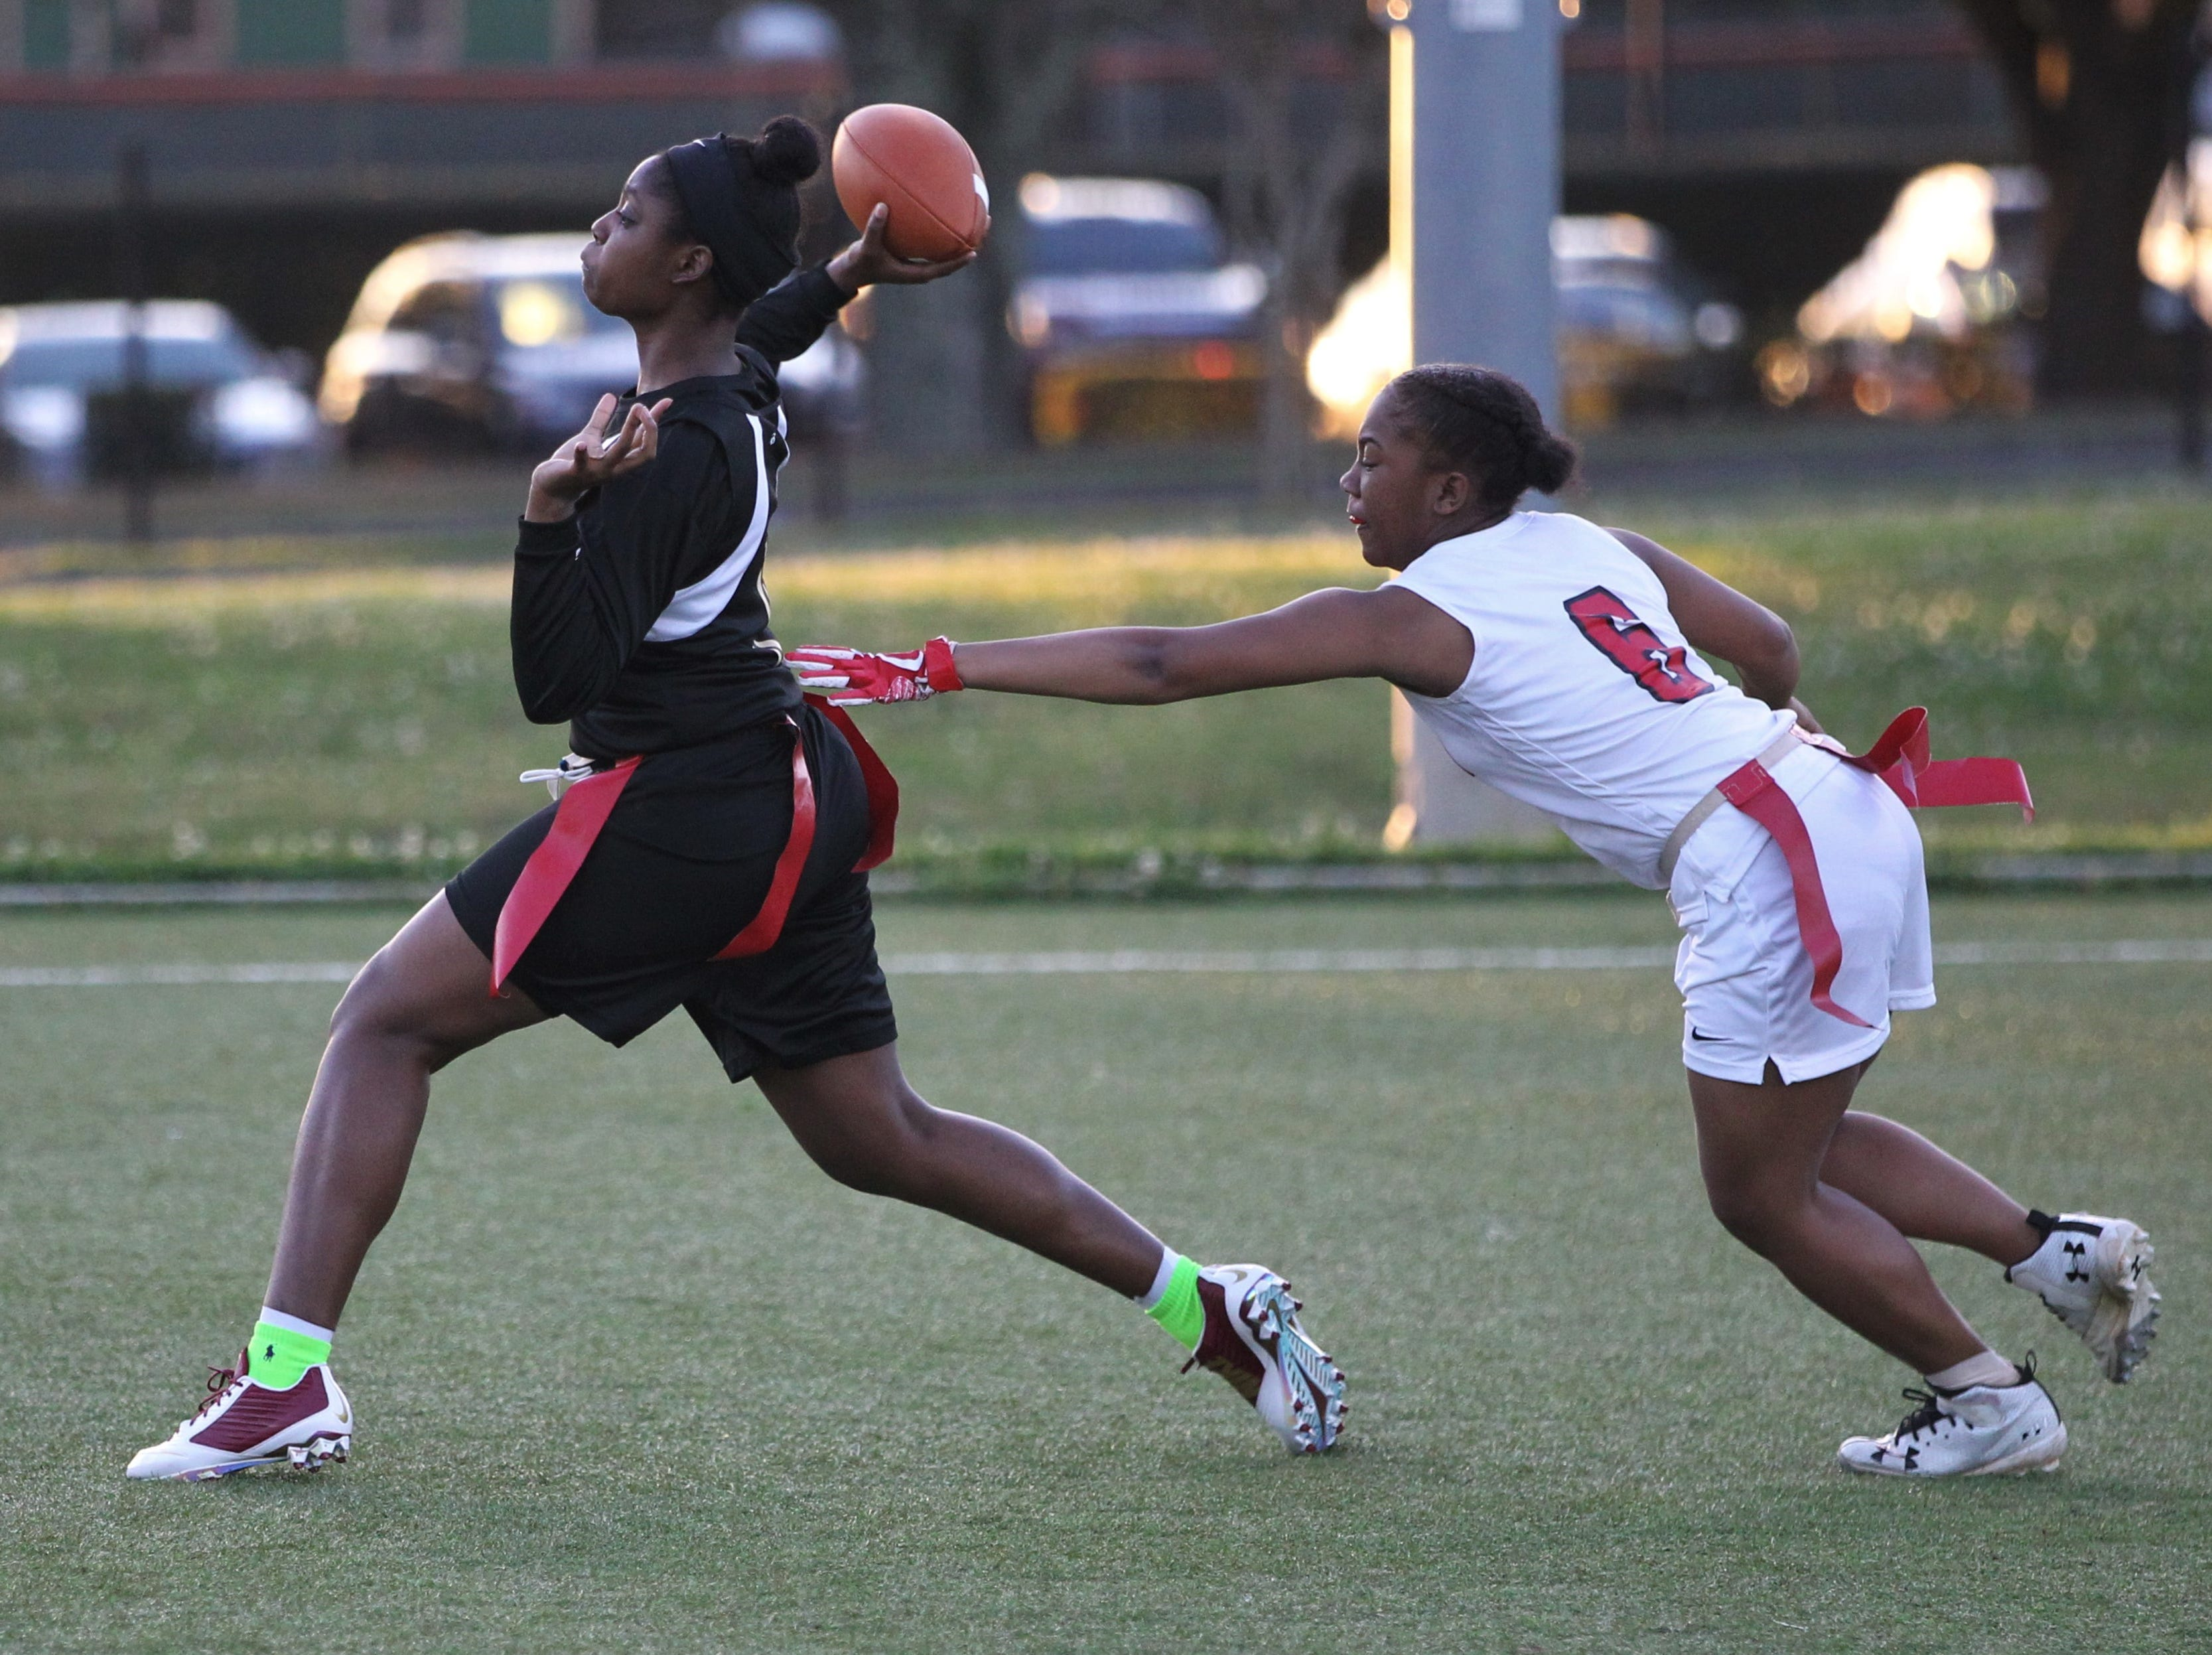 Florida High quarterback Kyndall Thomas throws a pass as the Seminoles and Leon play during the 2019 flag football preseason classic at Florida A&M's intramural turf fields on Feb. 27, 2019.